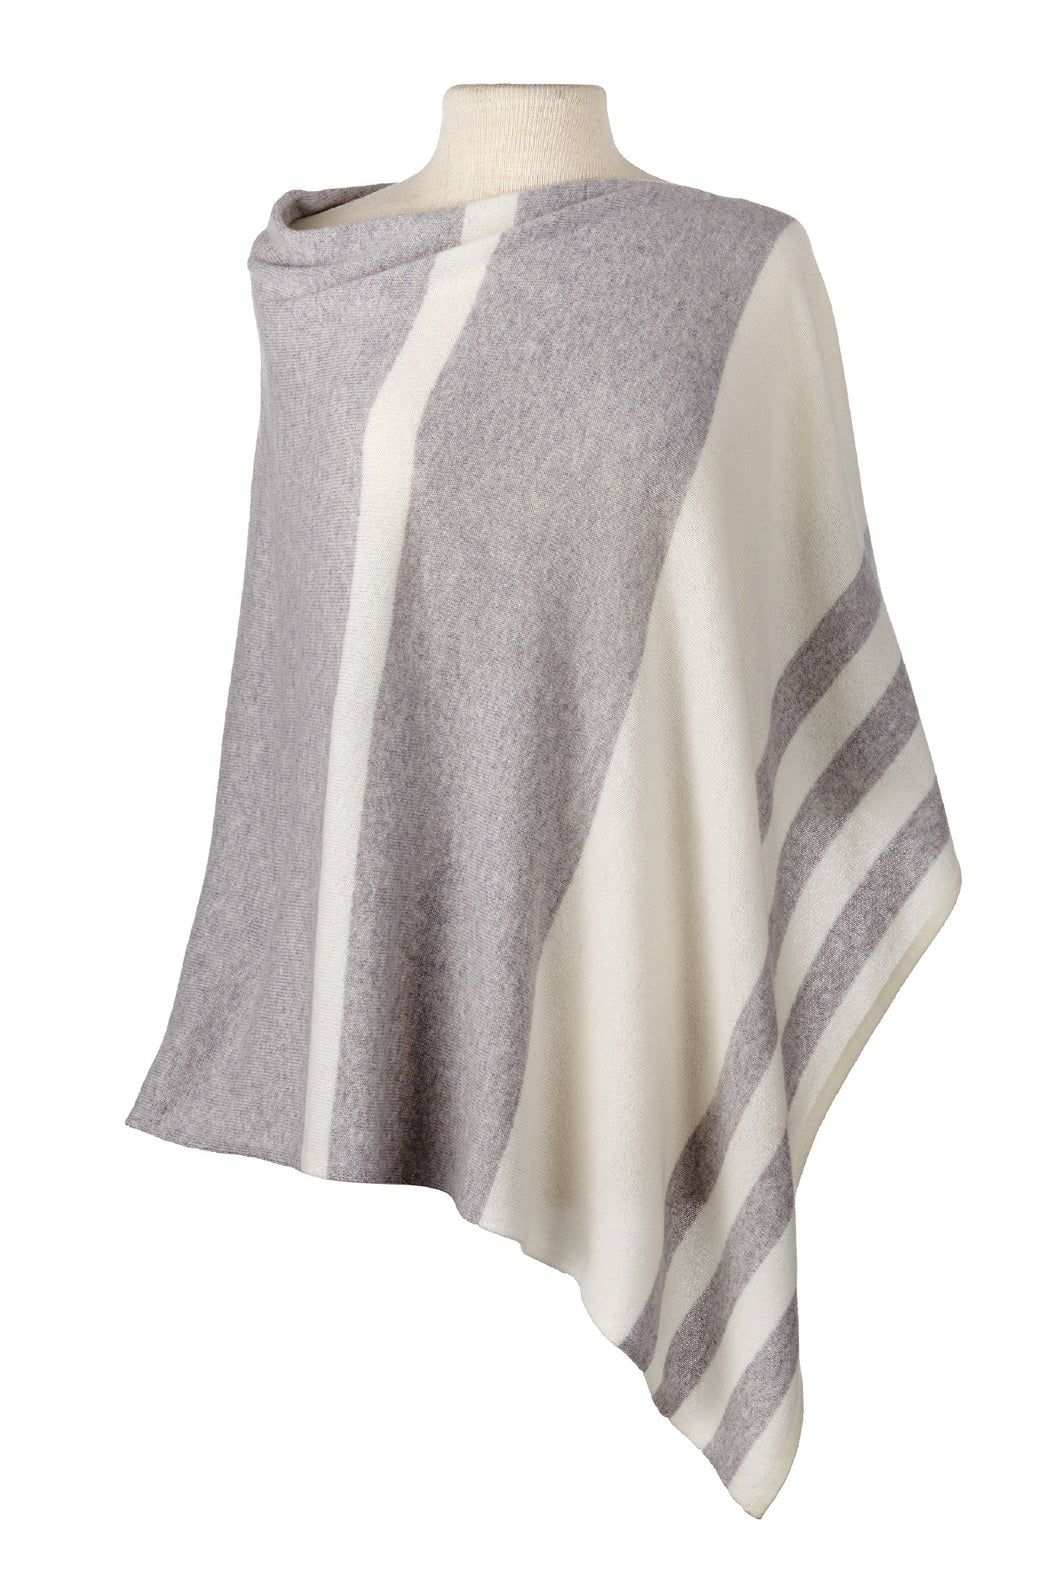 Stripped Cashmere Cape